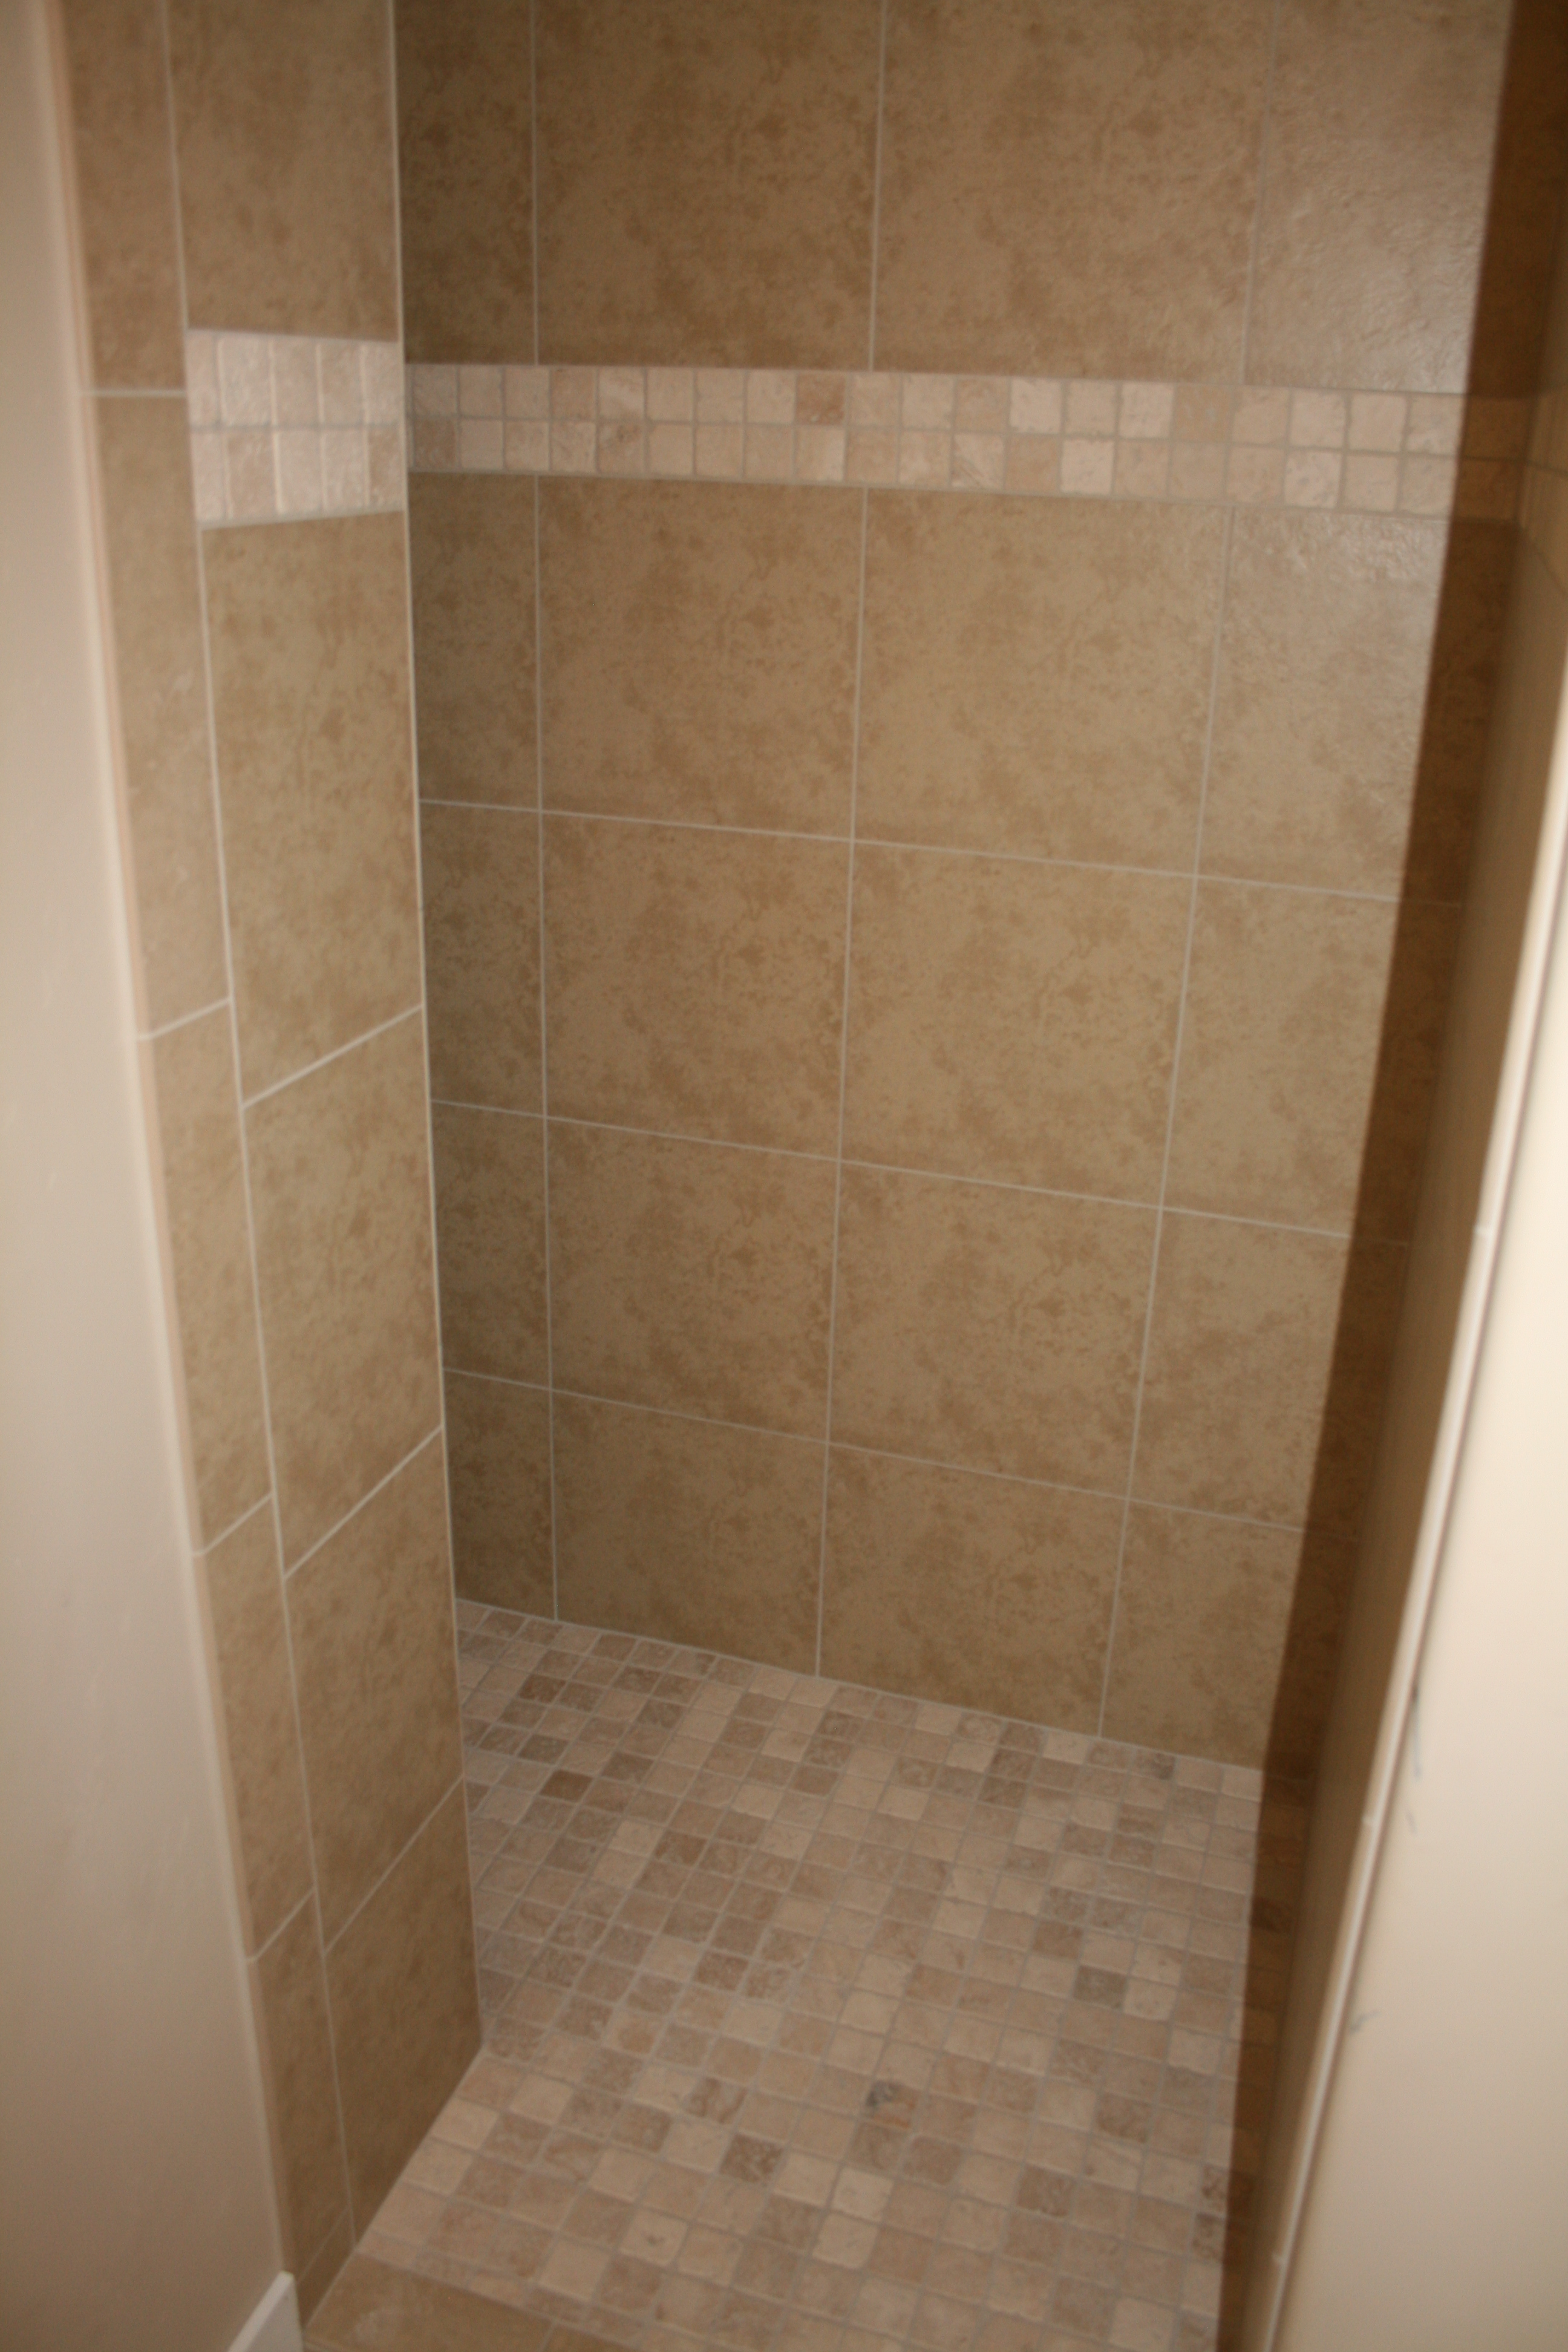 Tile Contractor License : Tile granite contractor boise s stone specialists